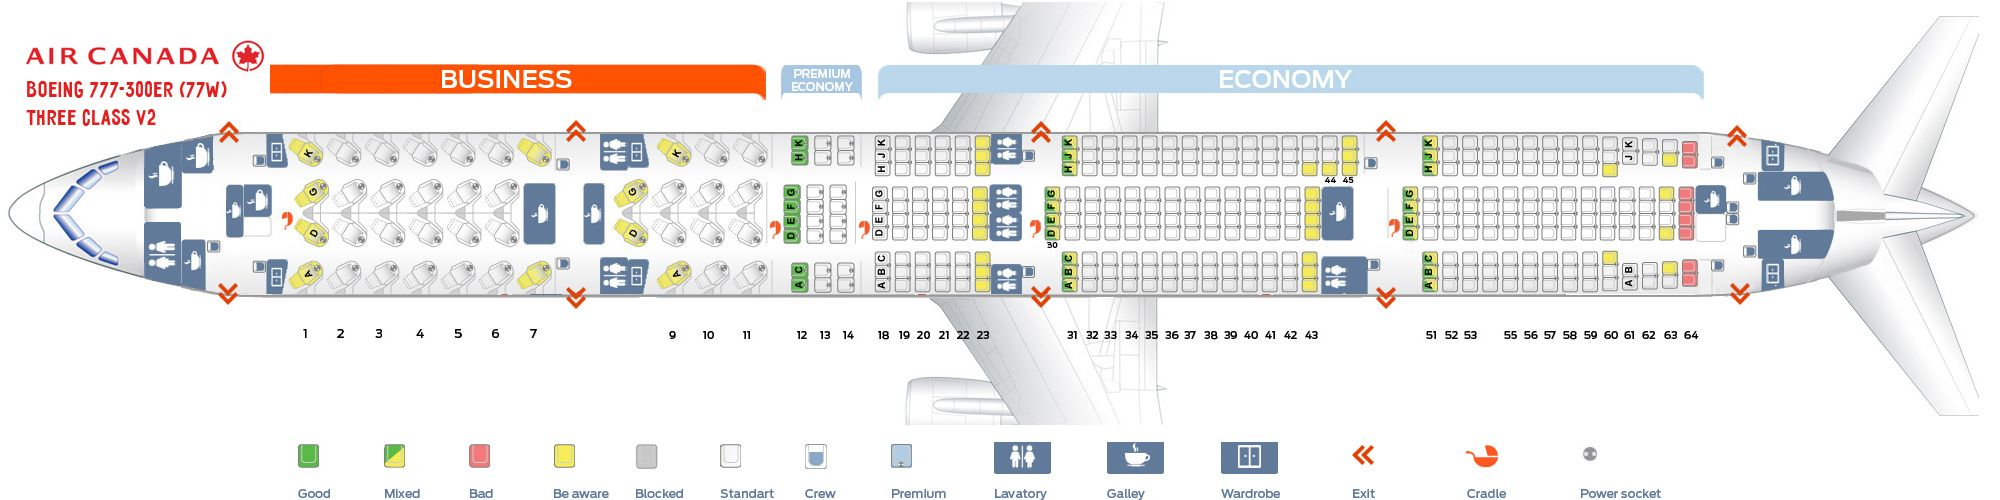 Air Canada Fleet Boeing 777300ER Details and Pictures